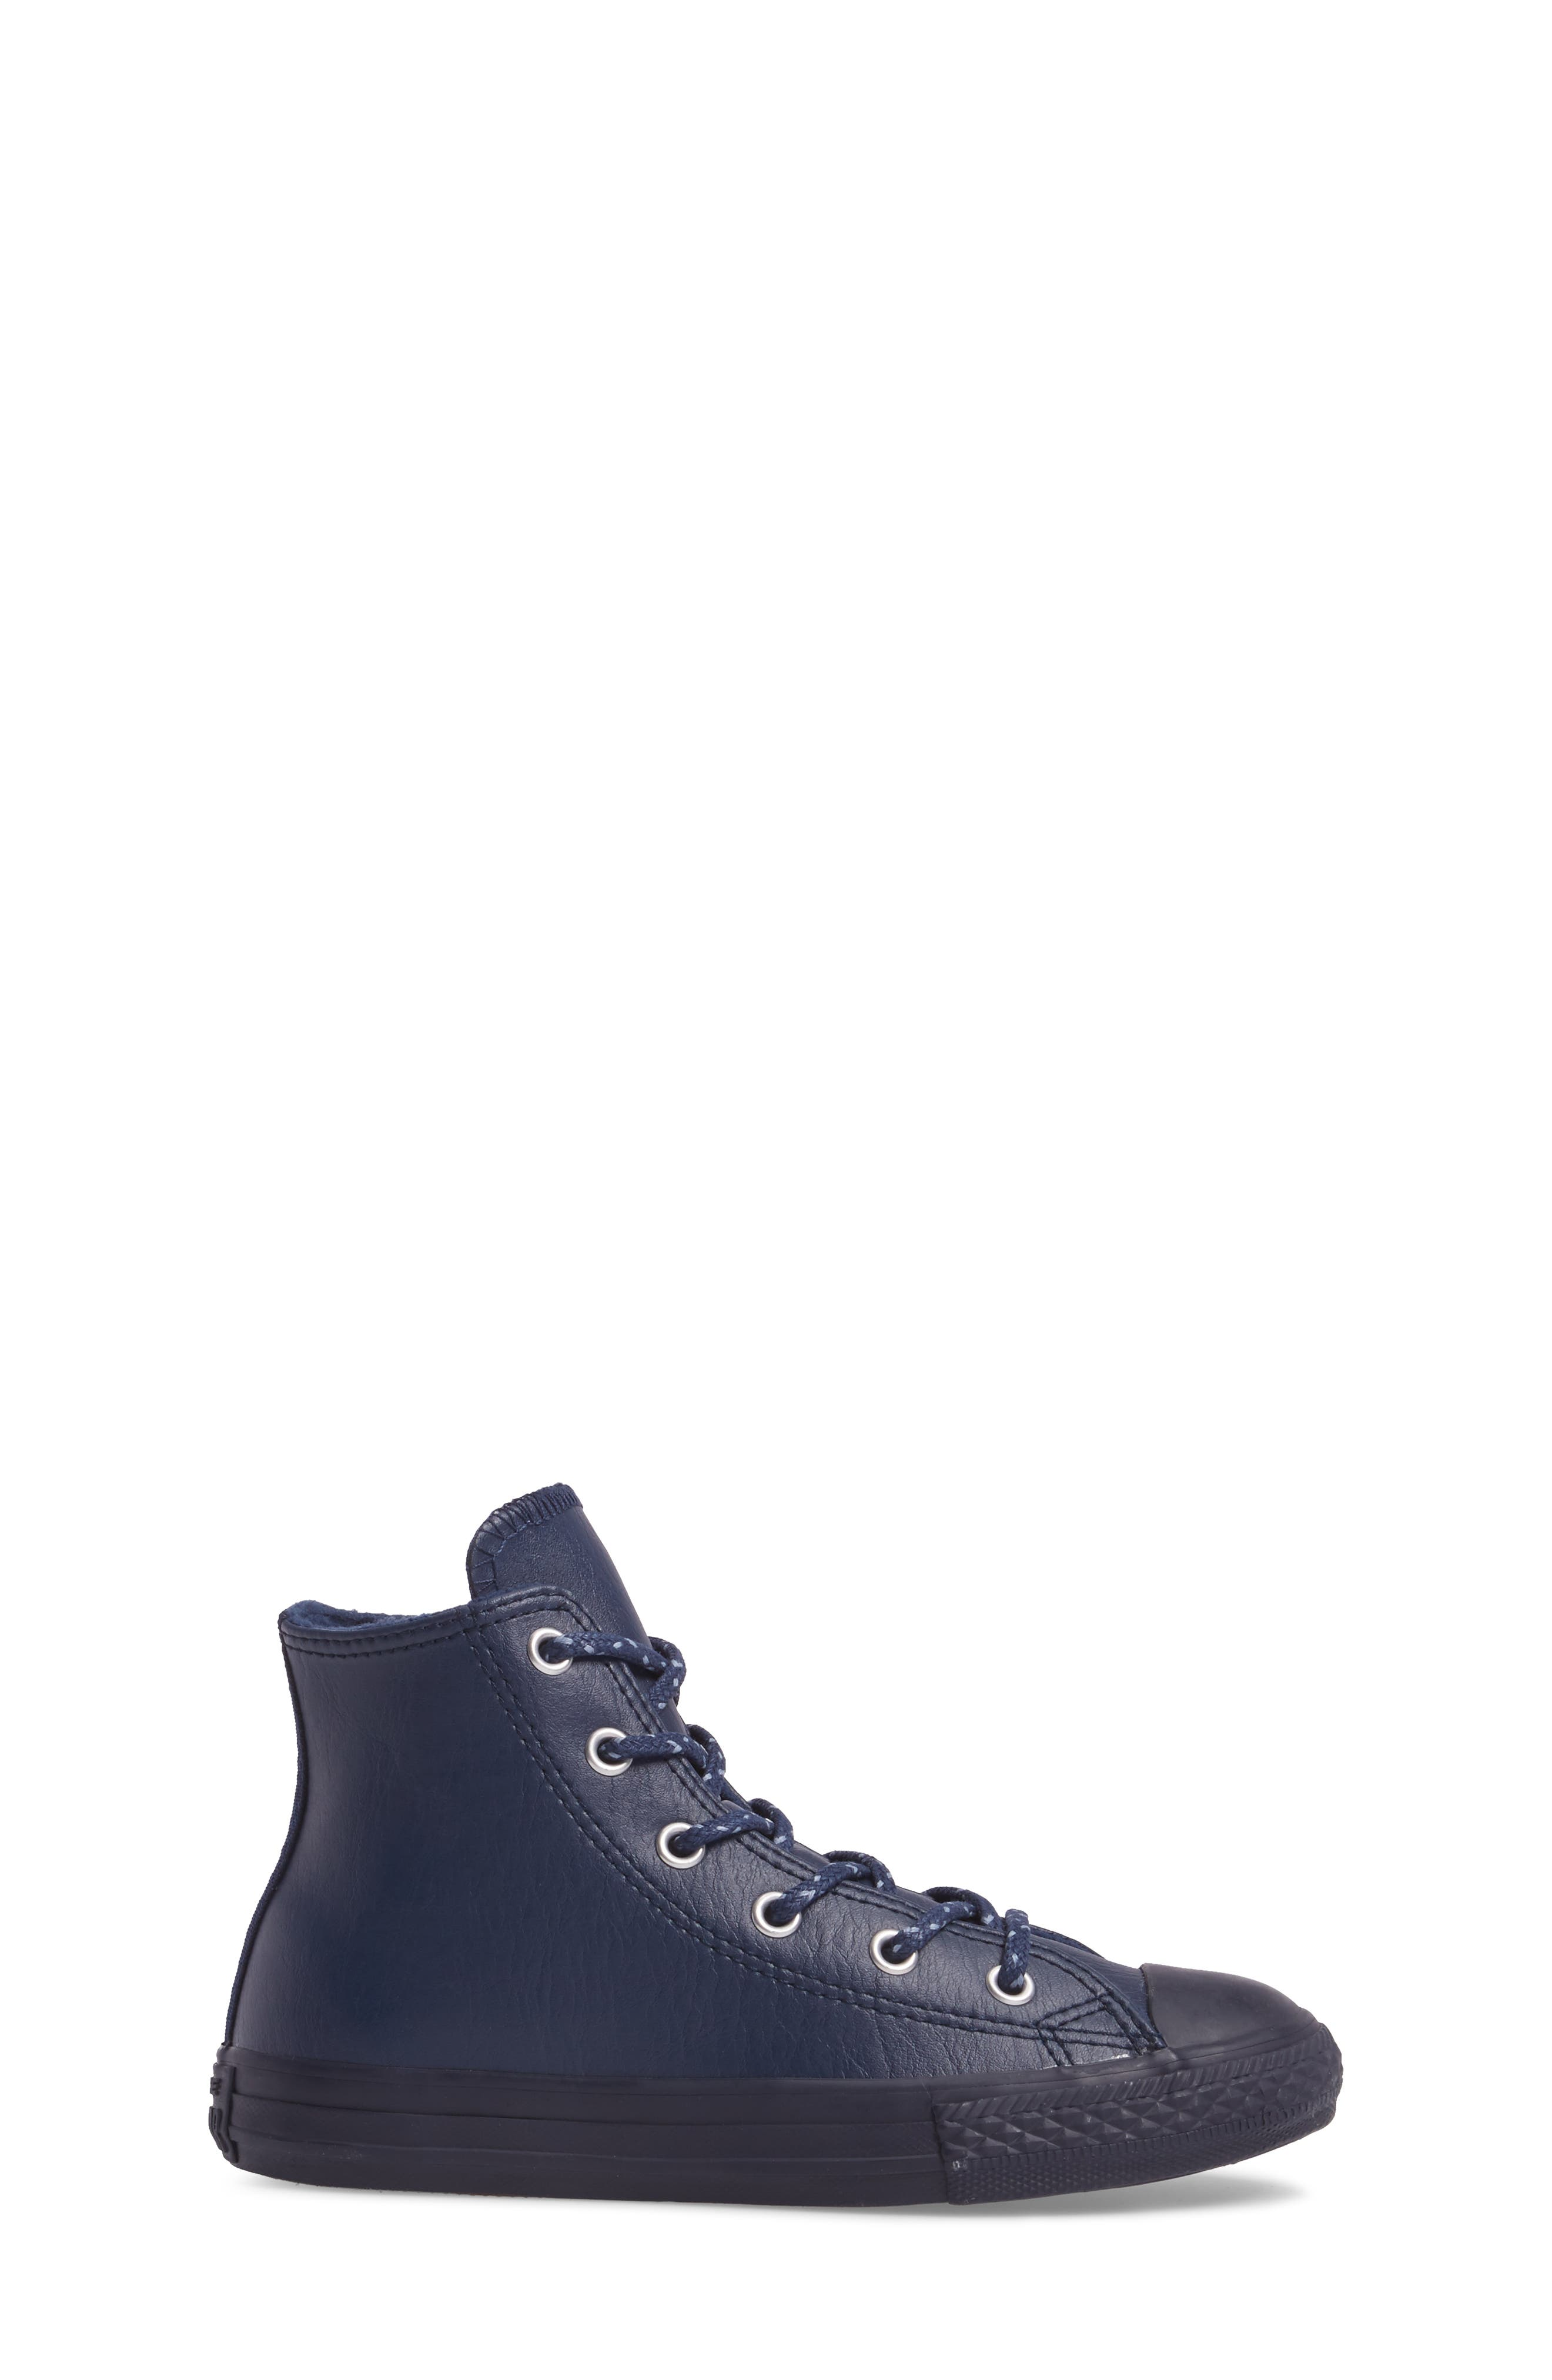 Alternate Image 3  - Converse Chuck Taylor® All Star® Leather High Top Sneaker (Toddler & Little Kid)